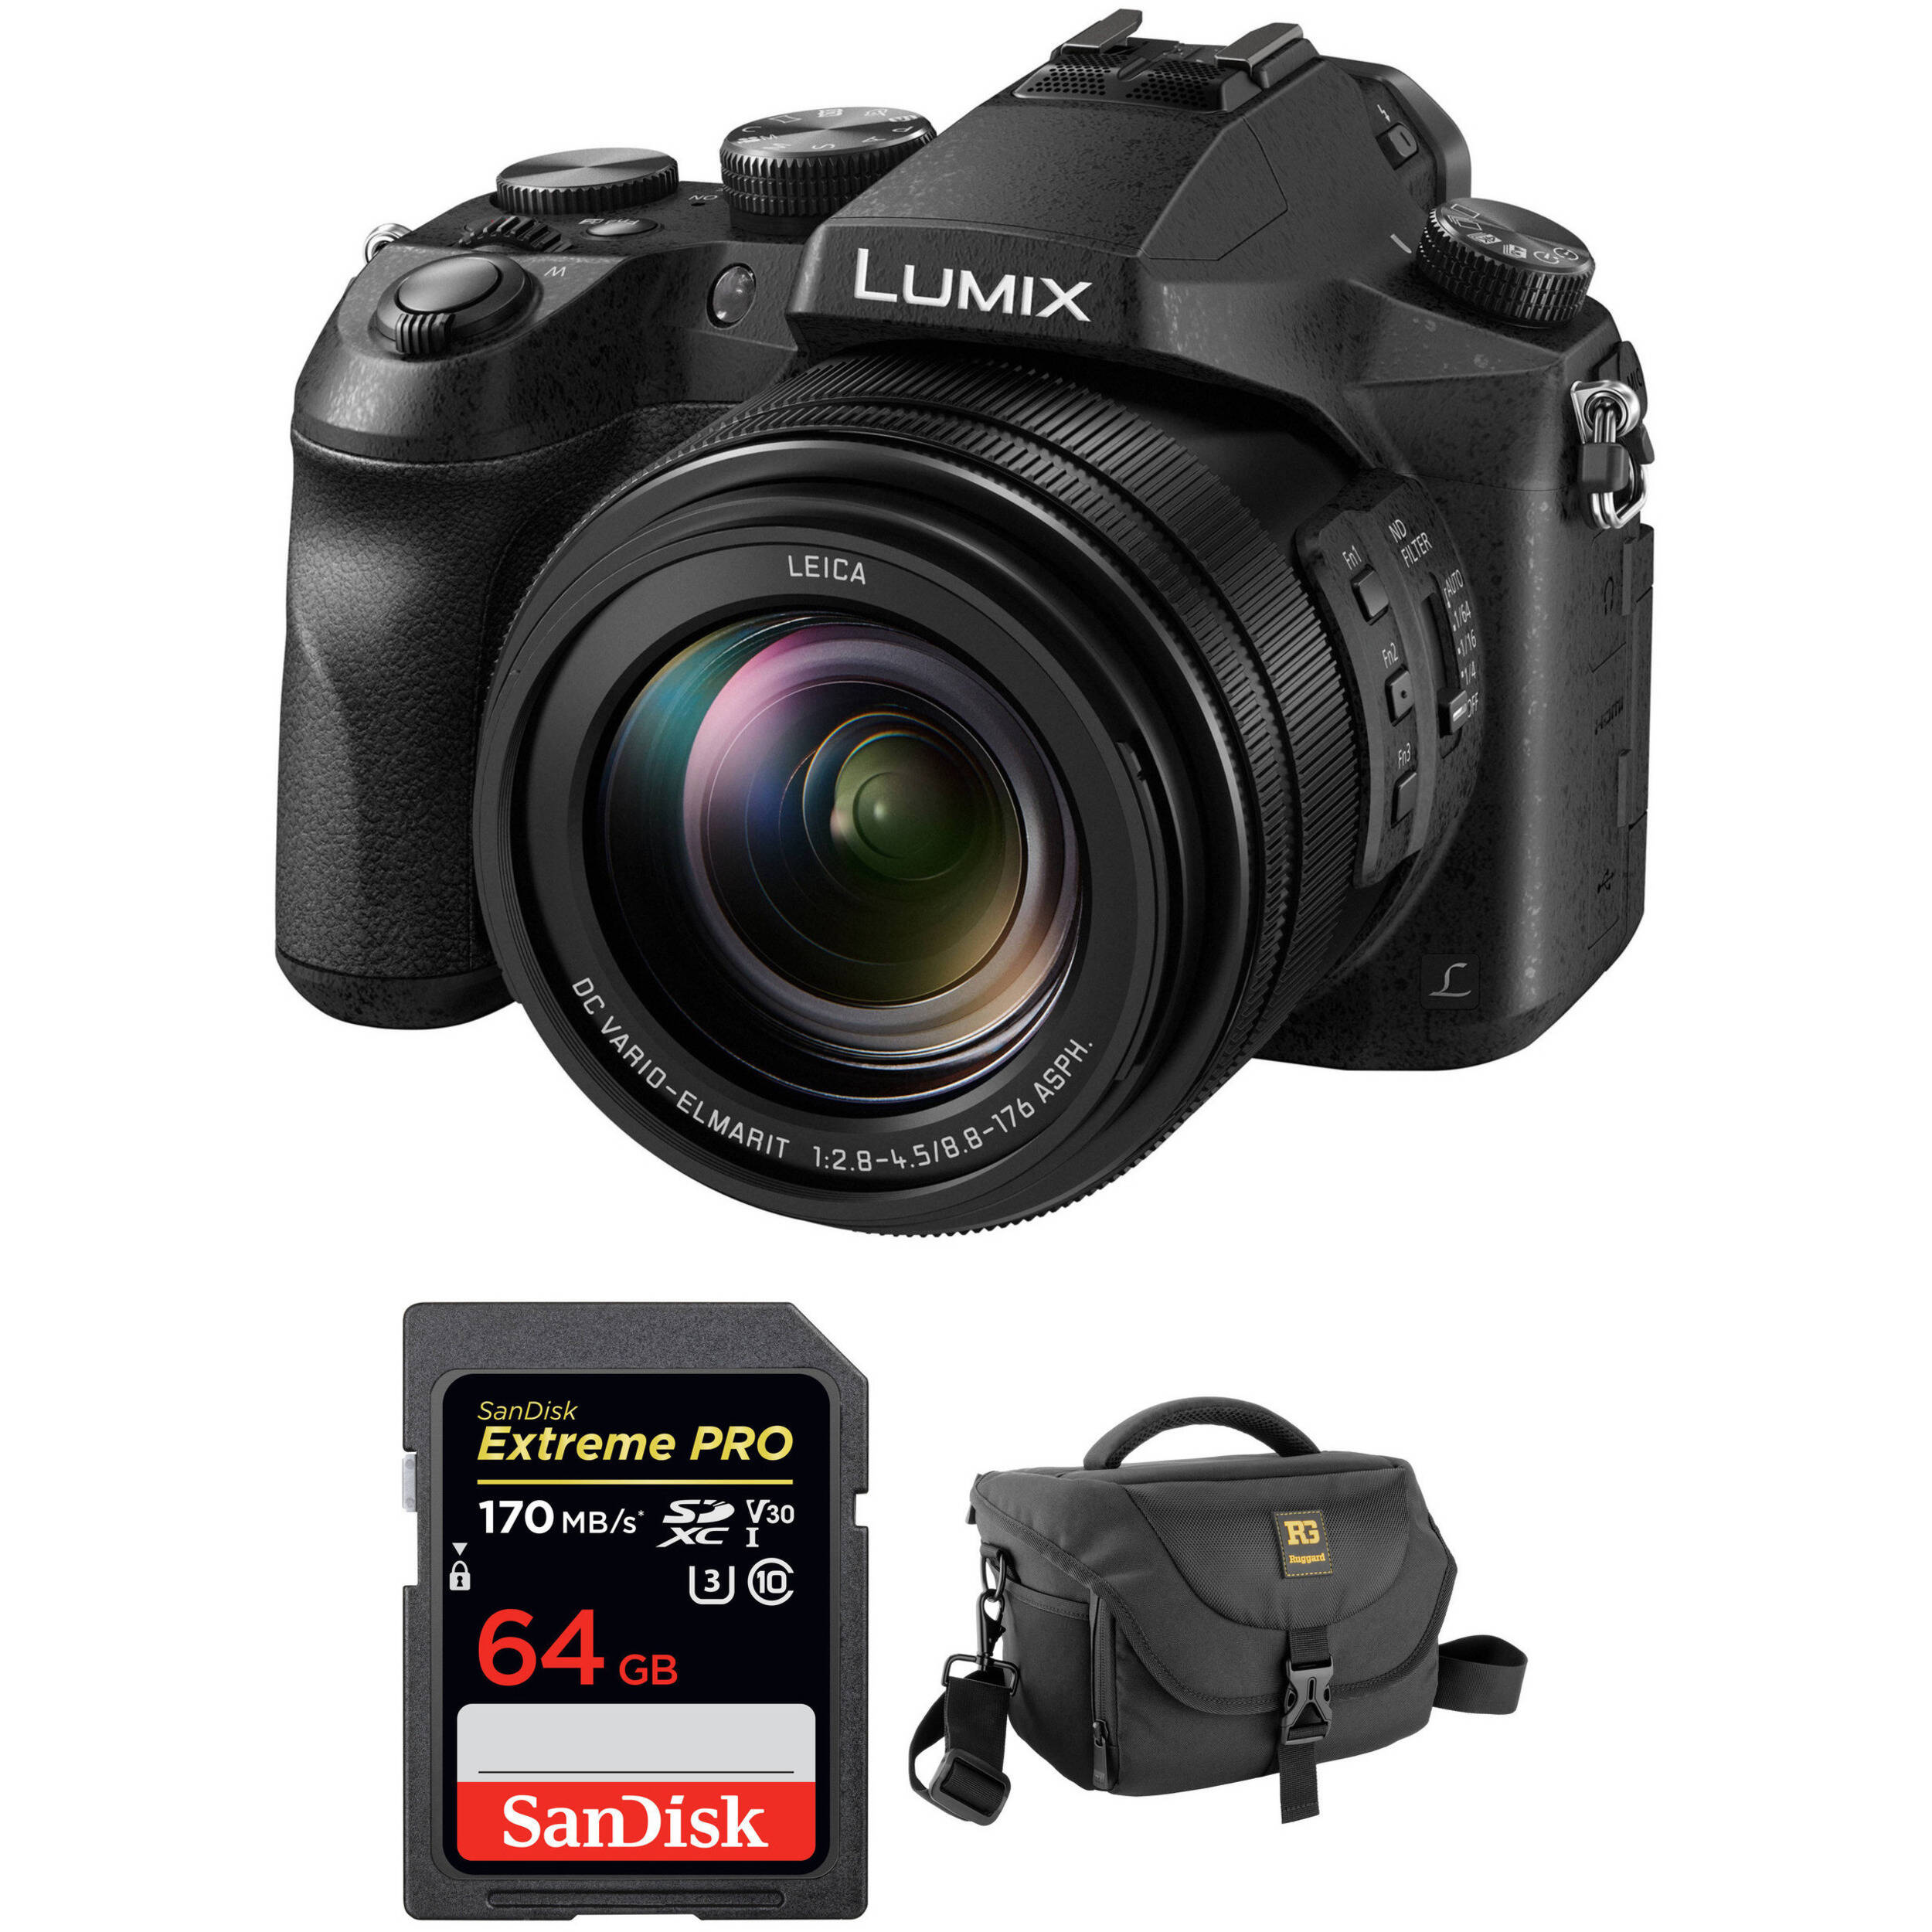 d6368b20b4 Panasonic Lumix DMC-FZ2500 Digital Camera with Free Accessory Kit